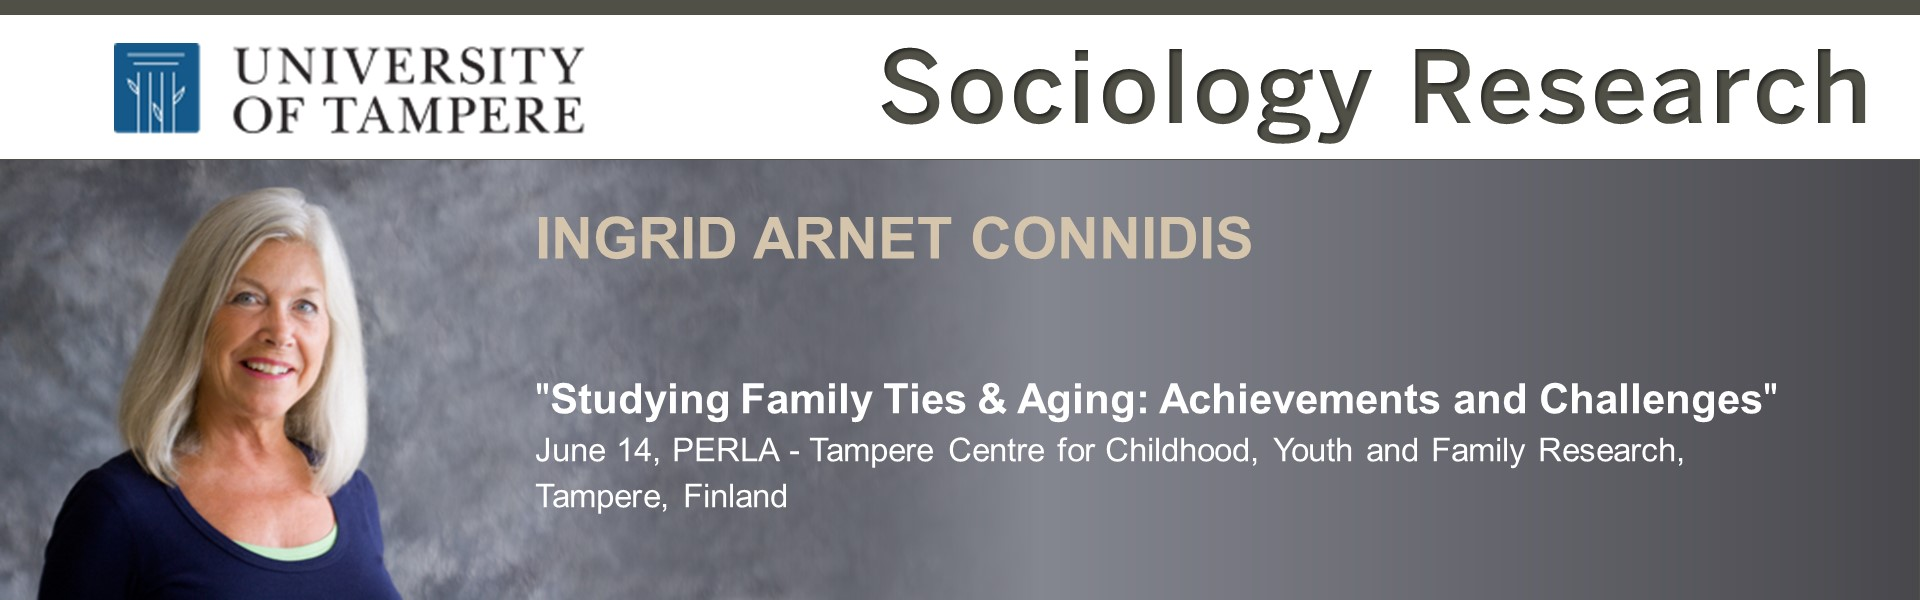 "Ingrid Arnet Connidis presenting her research ""Studying Family Ties & Aging: Achievements and Challenges"" on June 14 at PERLA - Tampere Centre for Childhood, Youth and Family Research, University of Tampere, Tampere, Finland"